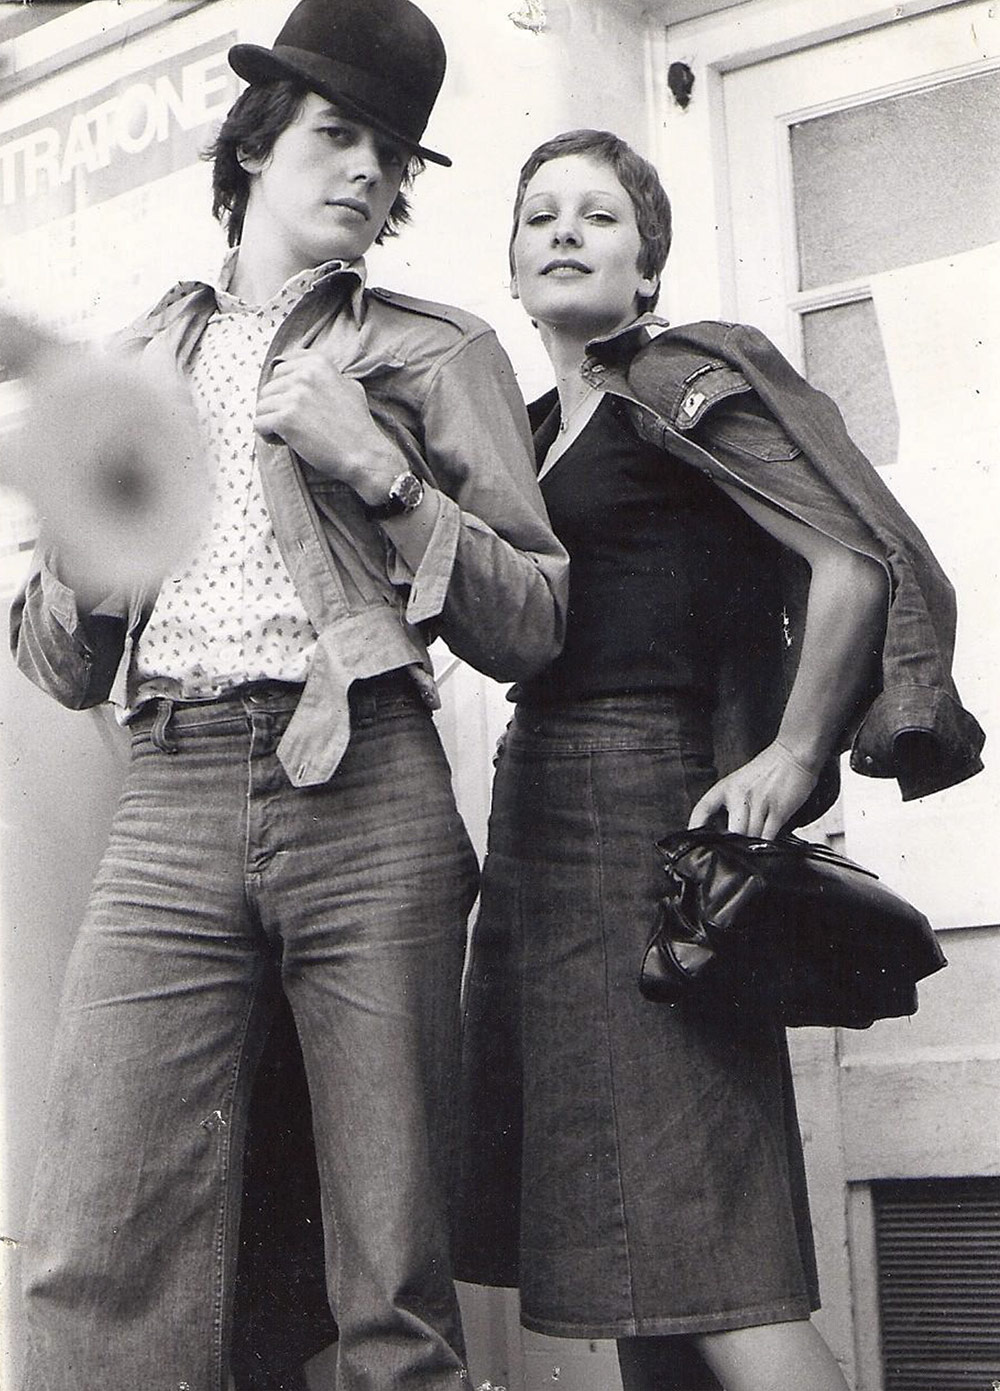 Kingston couple modelling 1970s fashion